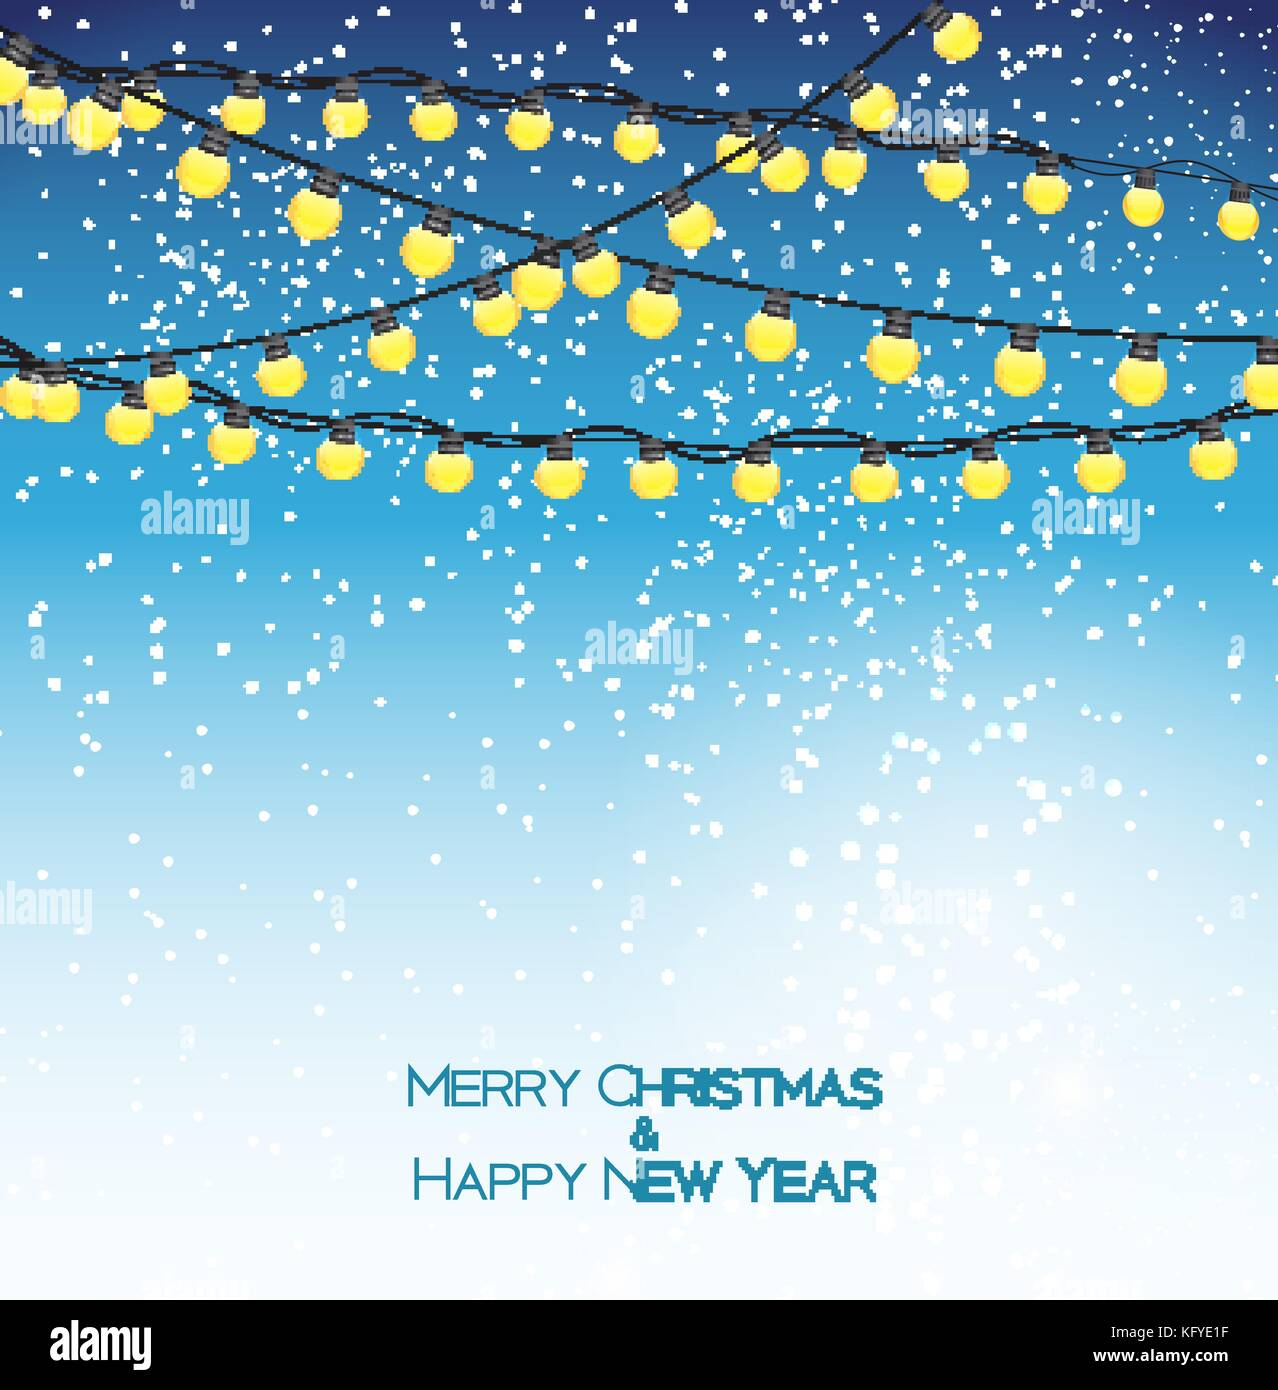 Abstract Beauty Christmas and New Year Background with Garland Bulb Lights and Falling Snow. Vector Illustration - Stock Vector